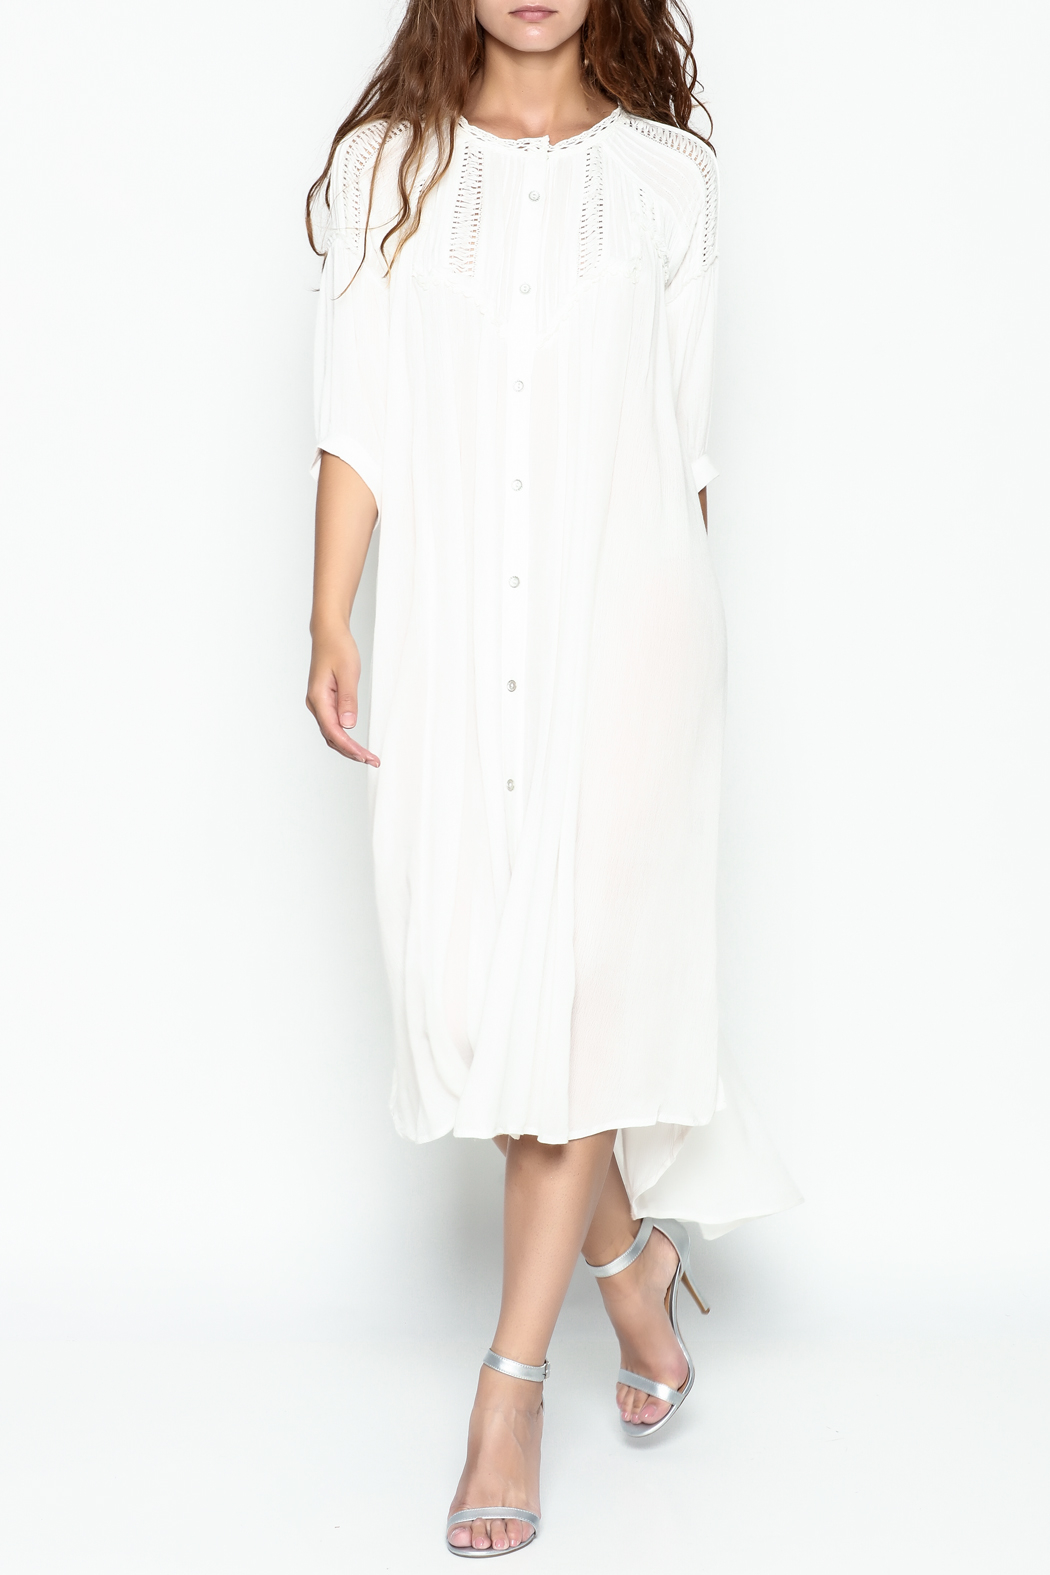 POL Pintuck Button Down Dress - Main Image